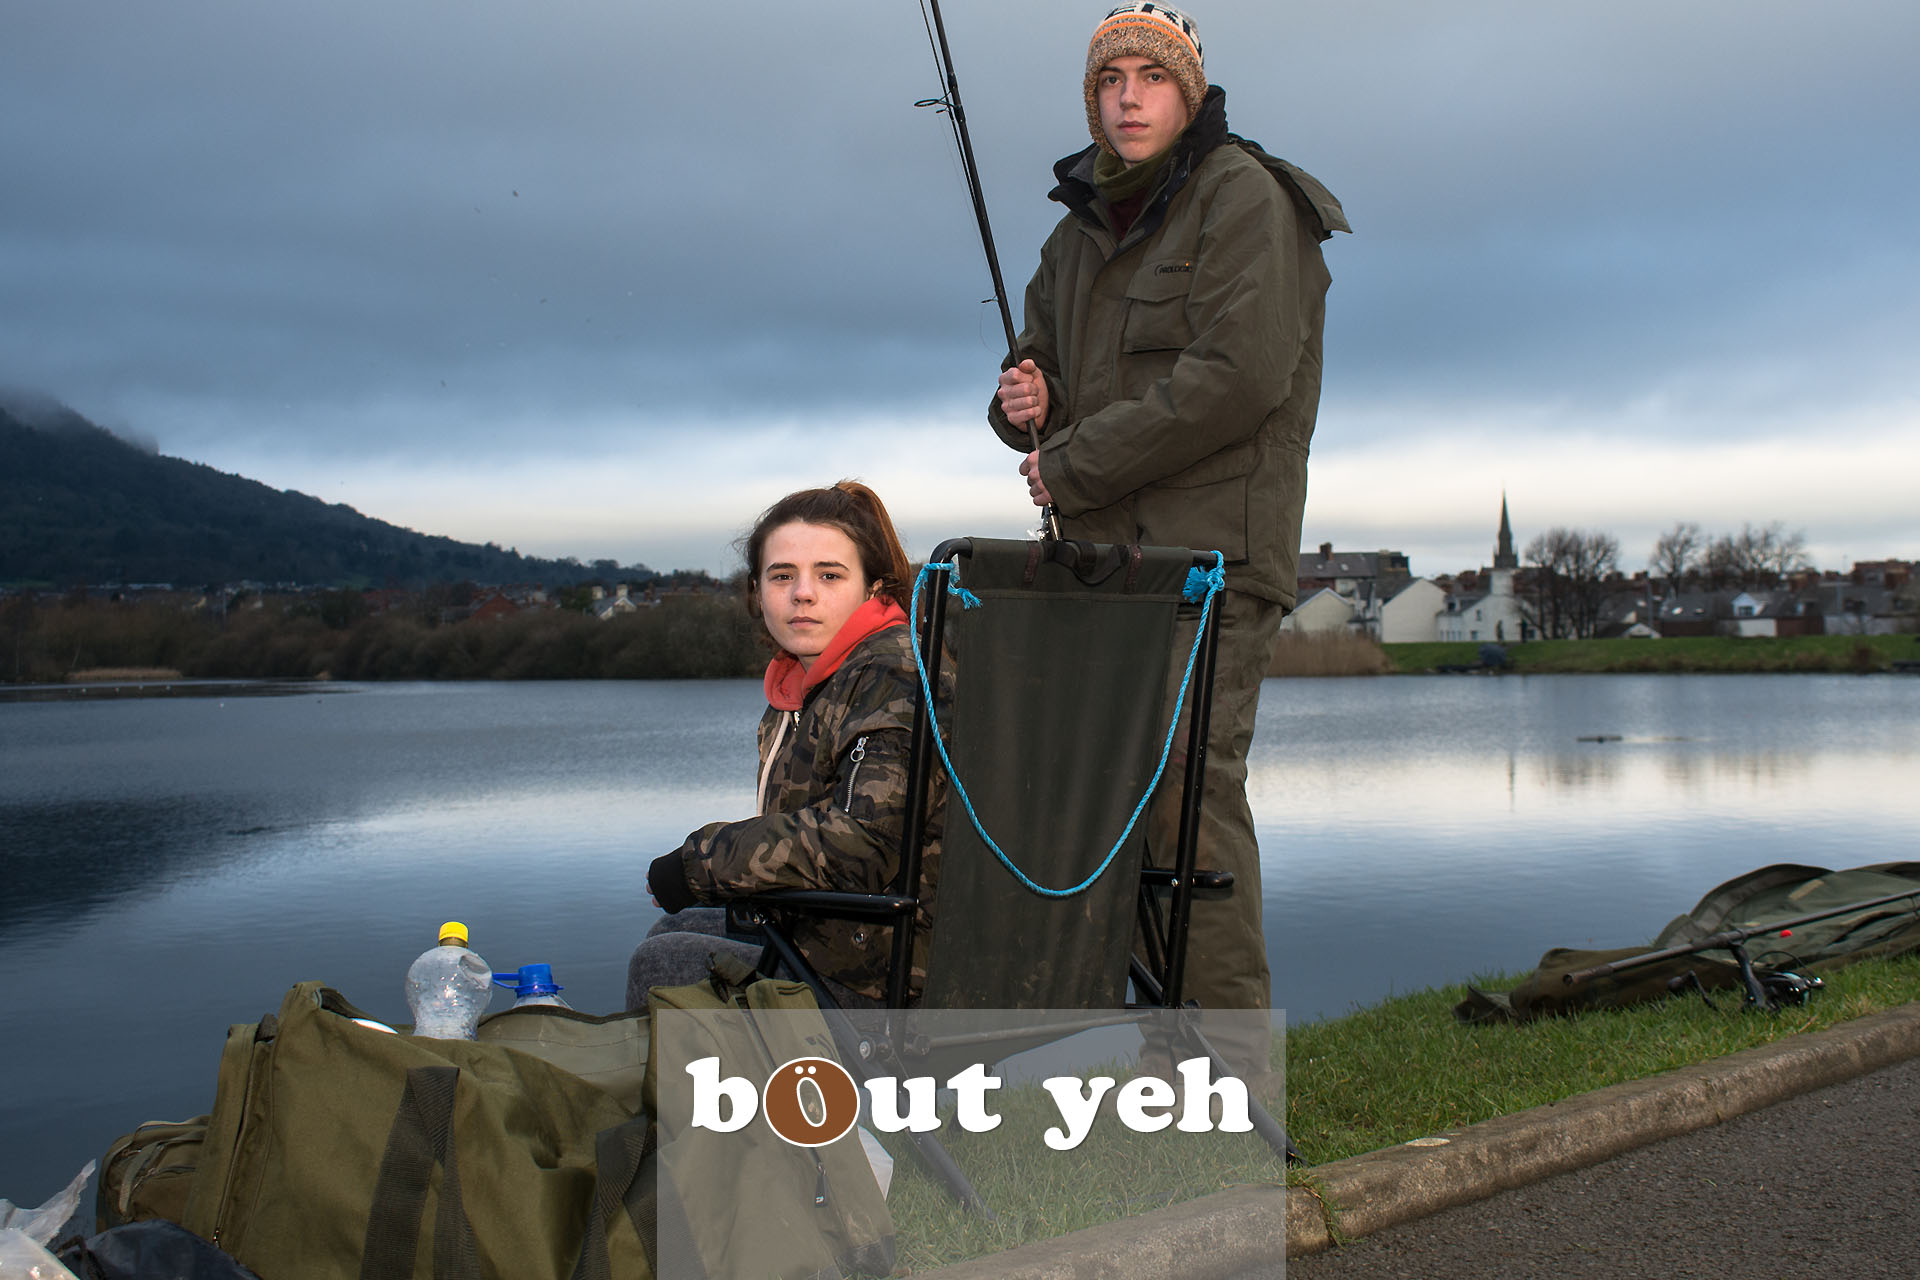 Young couple fishing at Waterworks, Belfast, Northern Ireland - bout yeh photographers Belfast photo 3950.